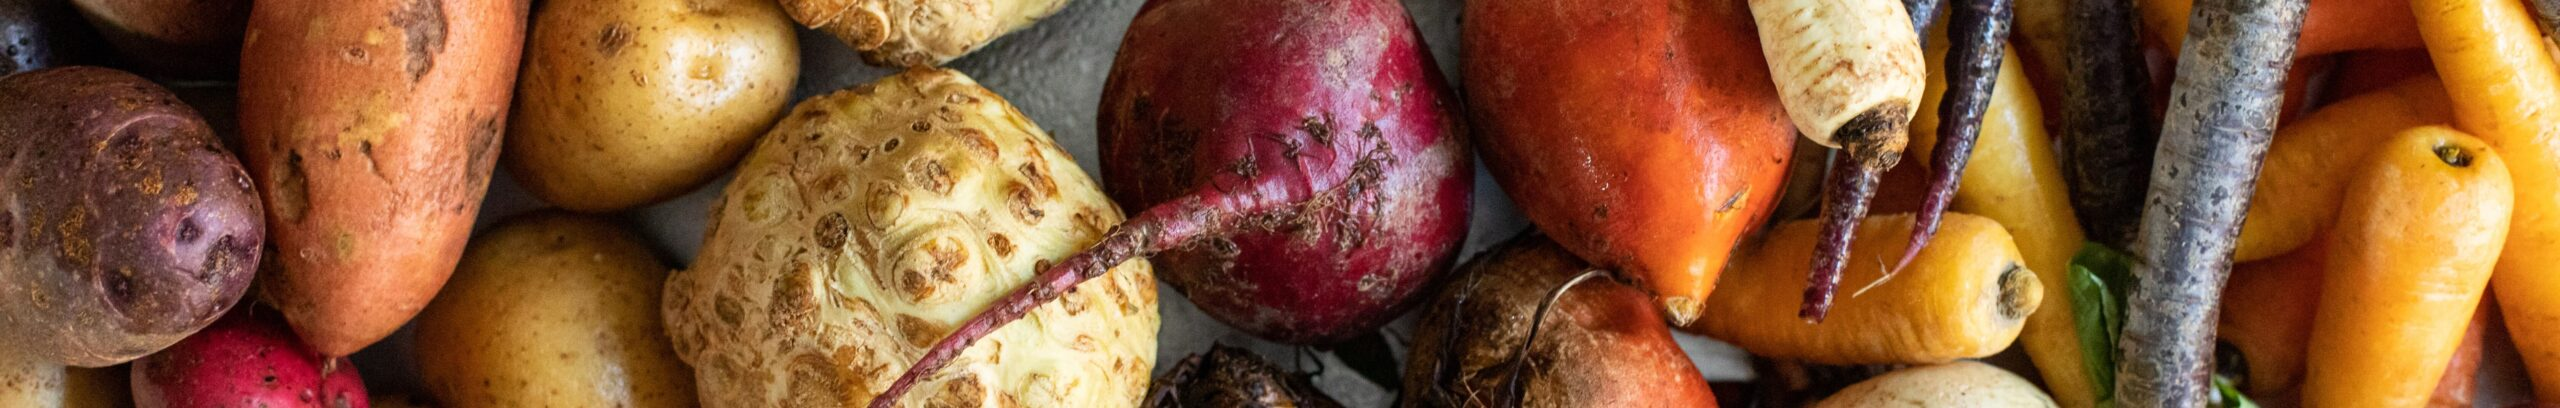 root-vegetable_cta_banner-scaled